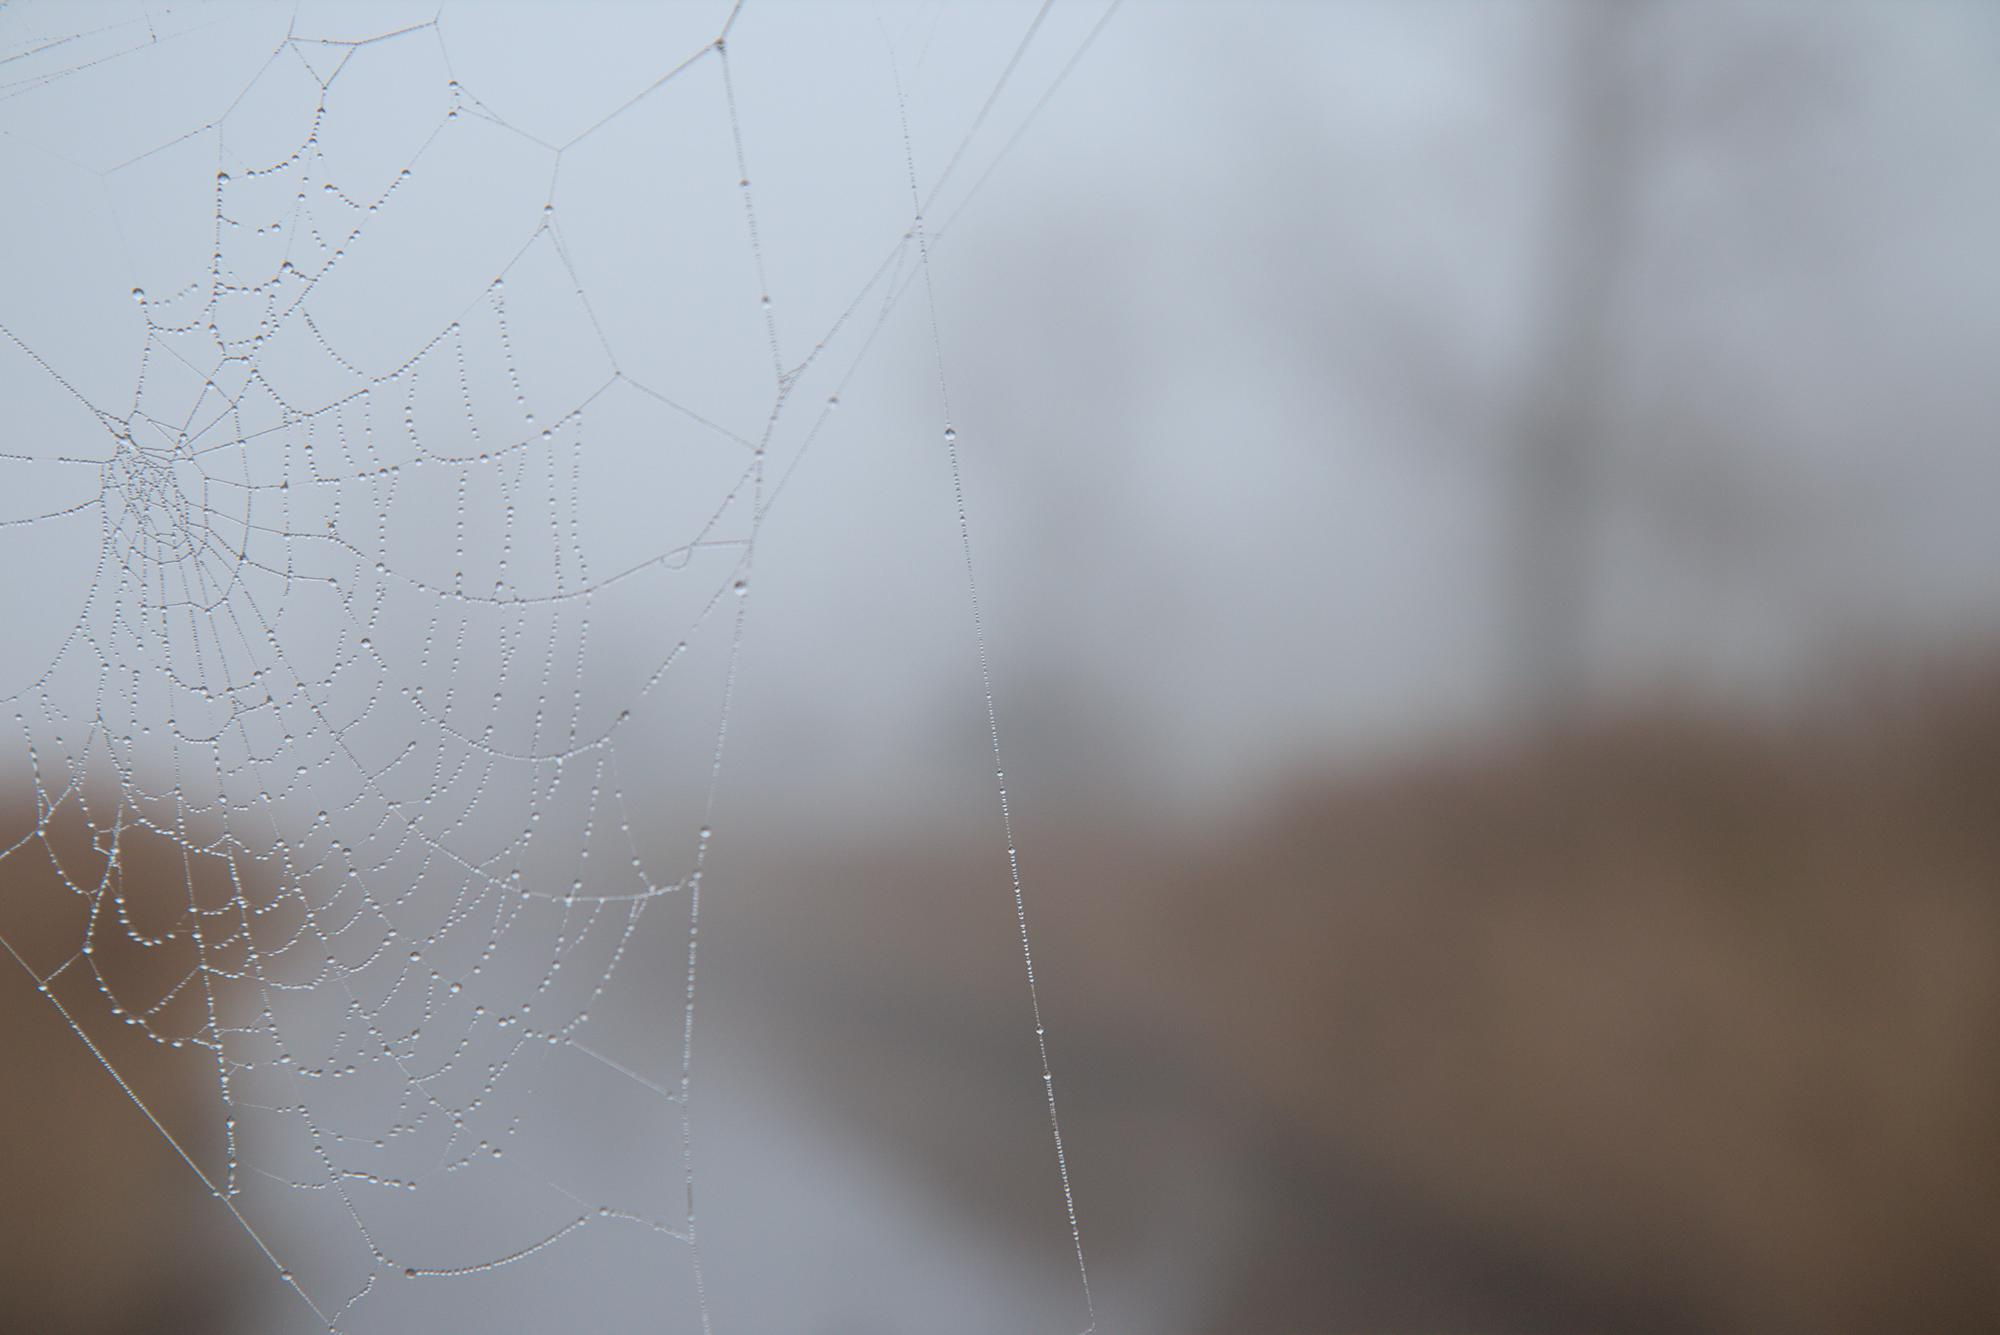 Spiderweb with fog droplets